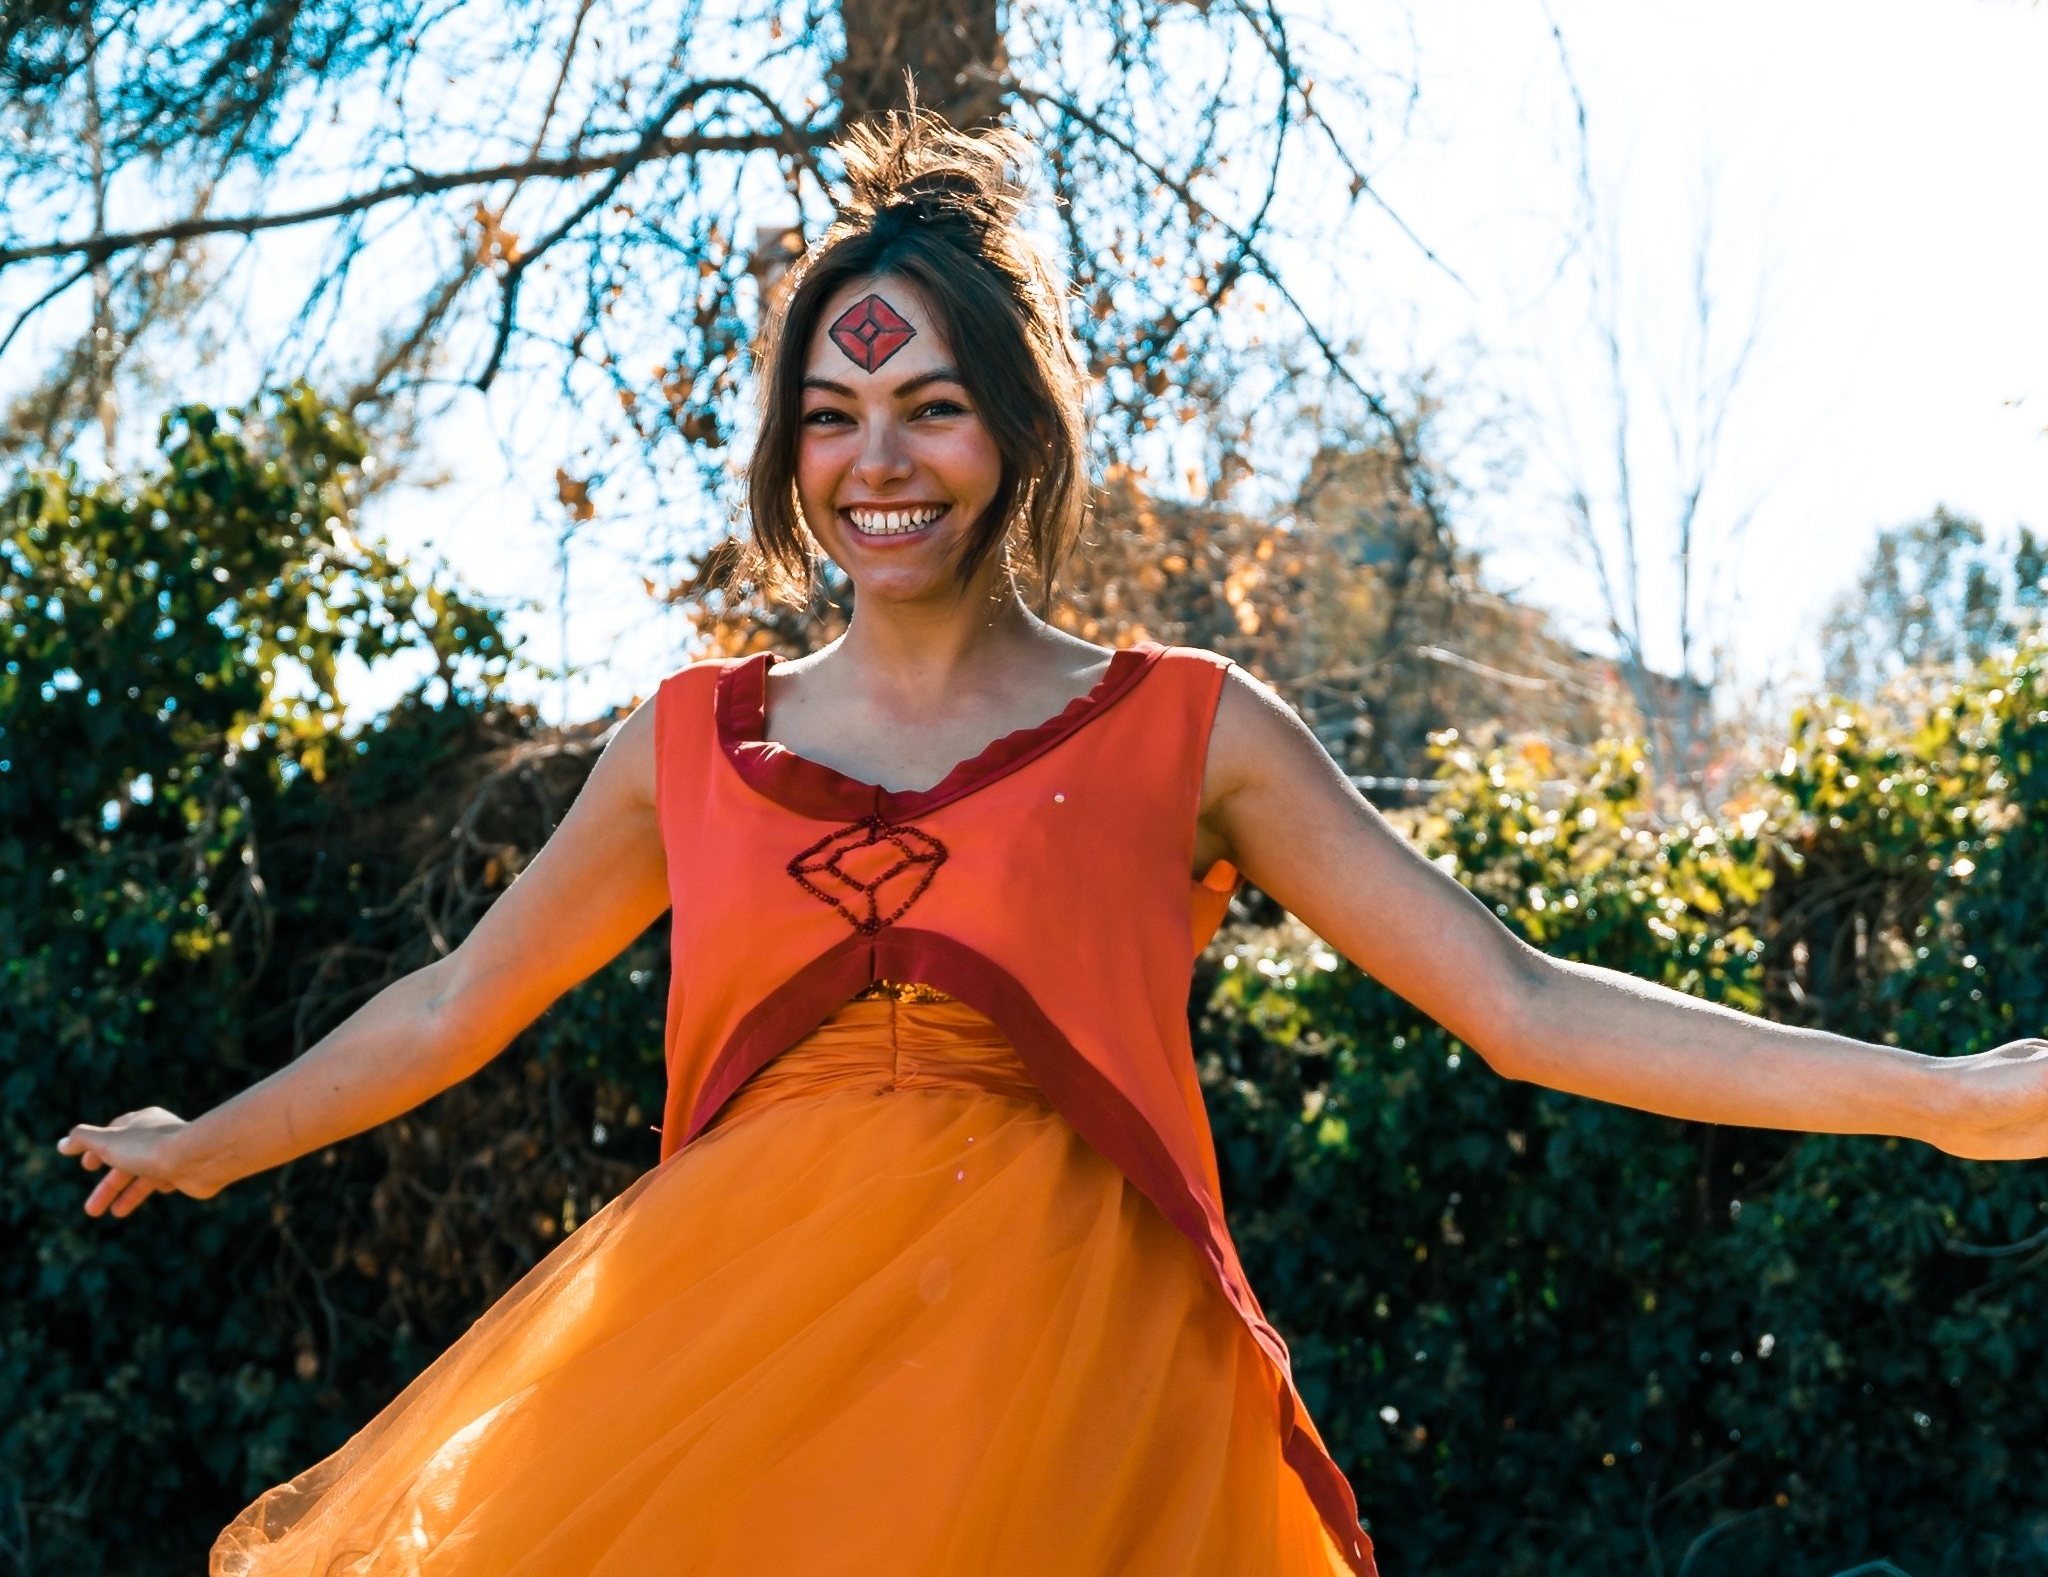 flame princess costumer/cosplay for halloween